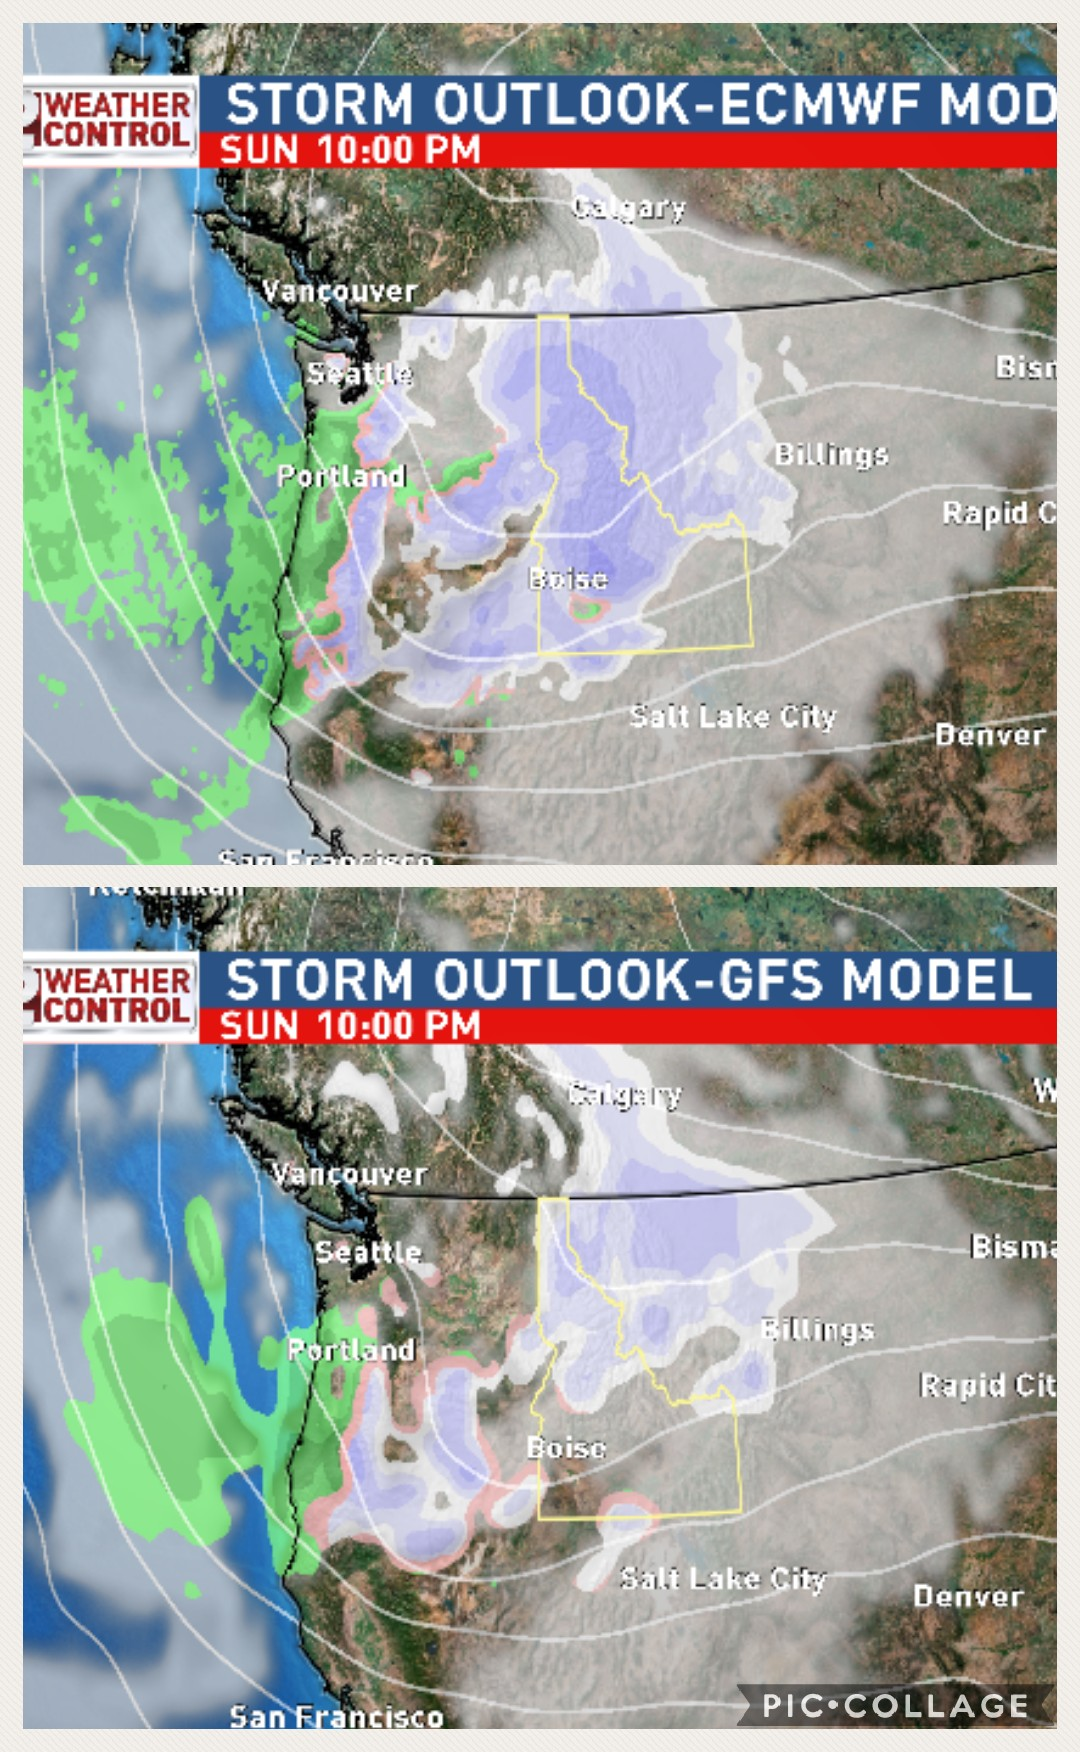 GFS - ECMWF Comparison